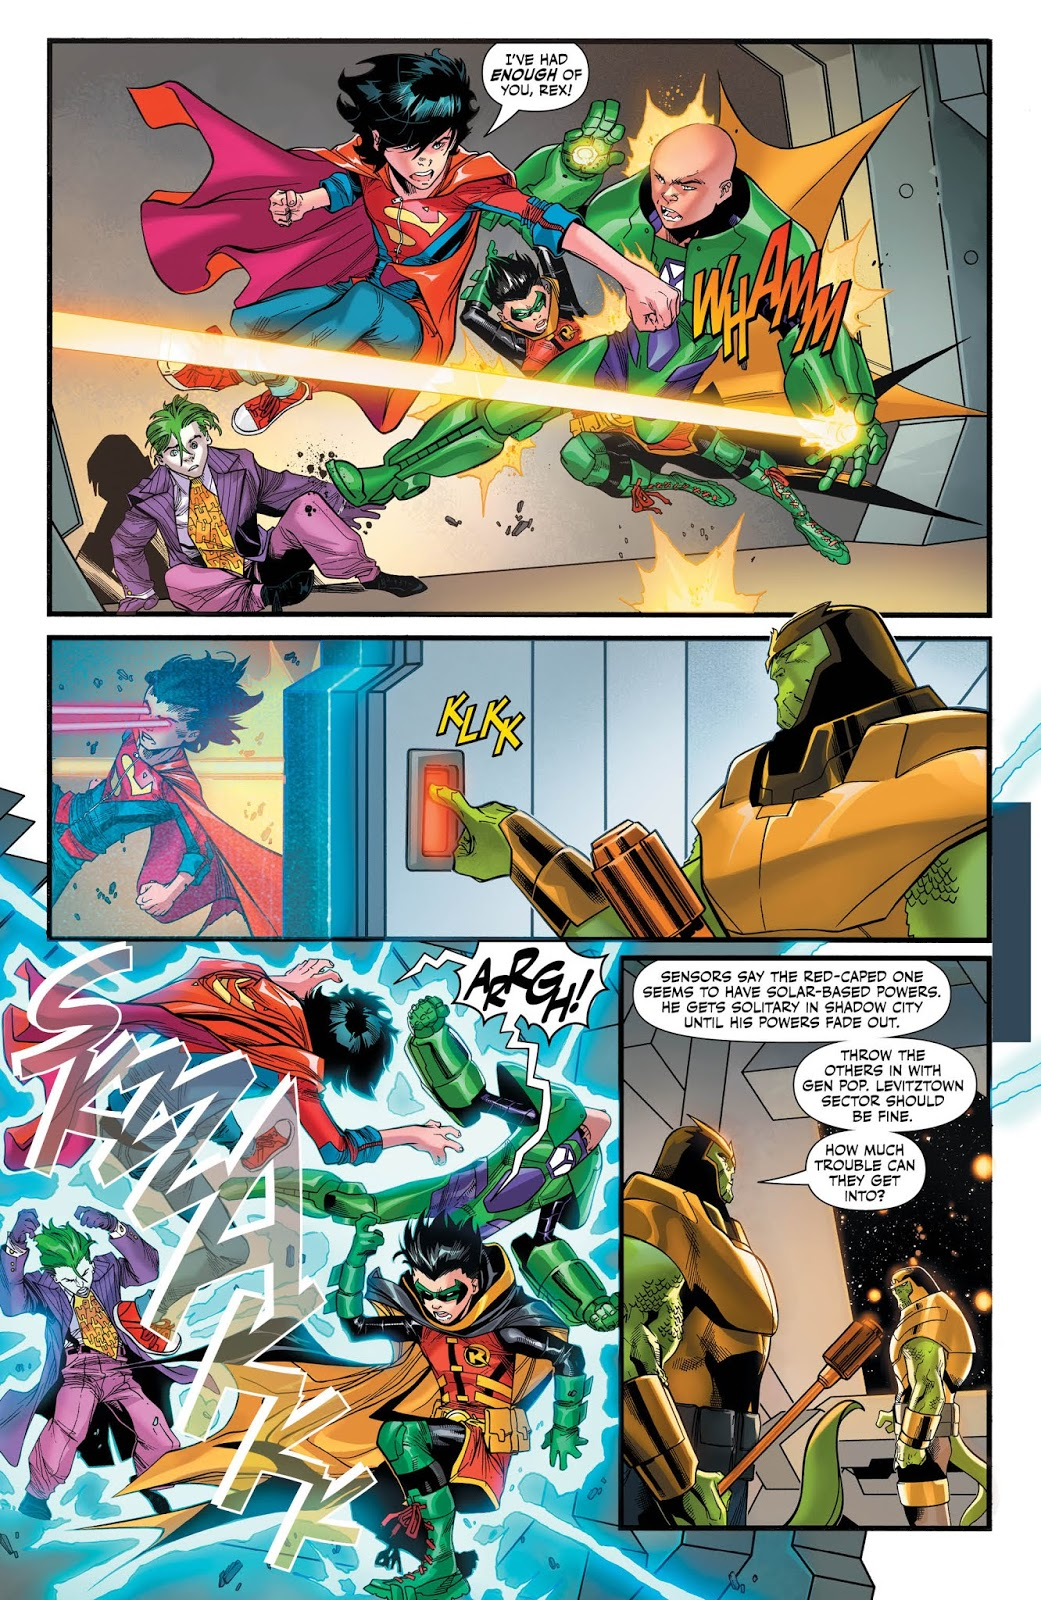 2//6//19 ADVENTURES OF THE SUPER SONS #7 OF 12